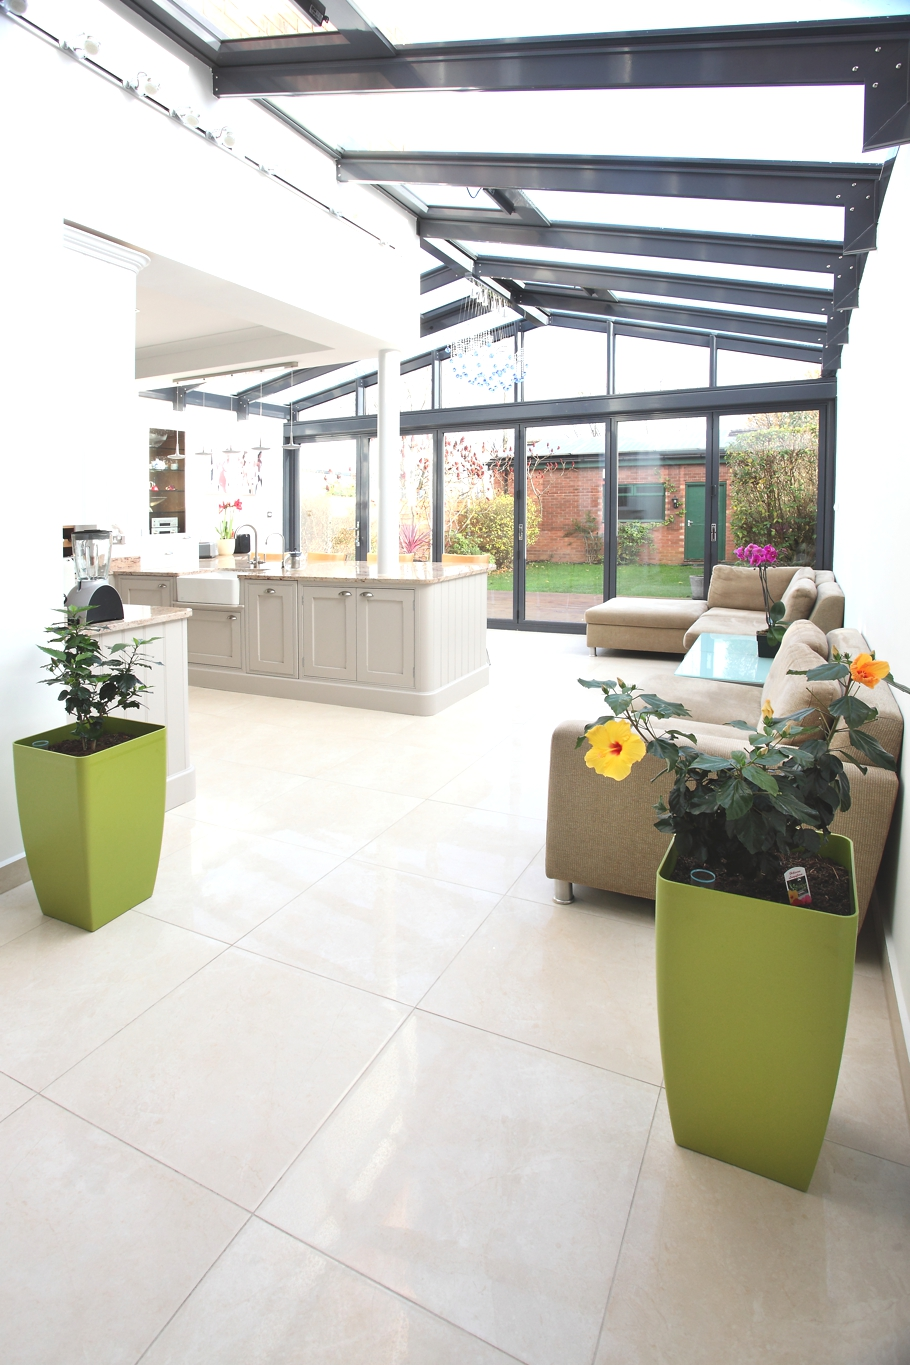 Magnificent Ideas For Home Extensions Mold - Home Decorating ...